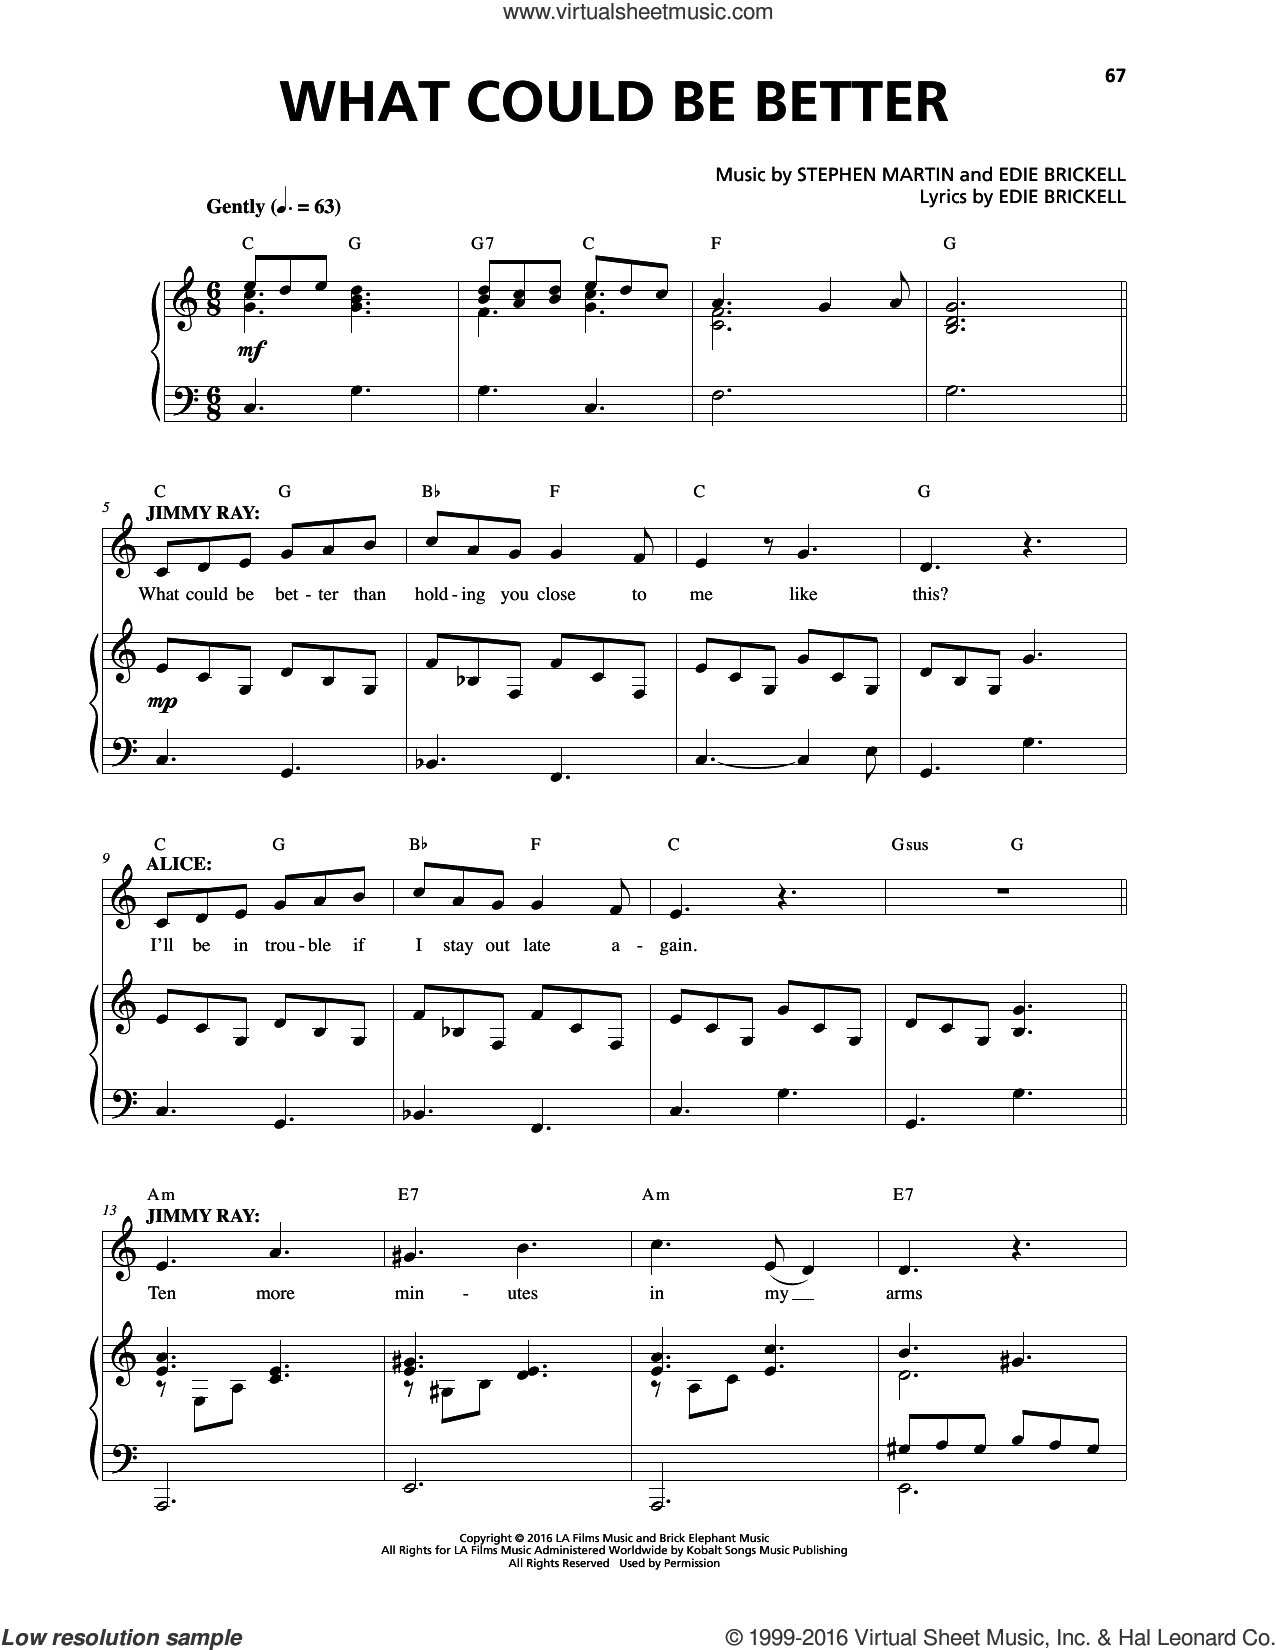 What Could Be Better sheet music for voice and piano by Edie Brickell, Stephen Martin and Stephen Martin & Edie Brickell, intermediate skill level